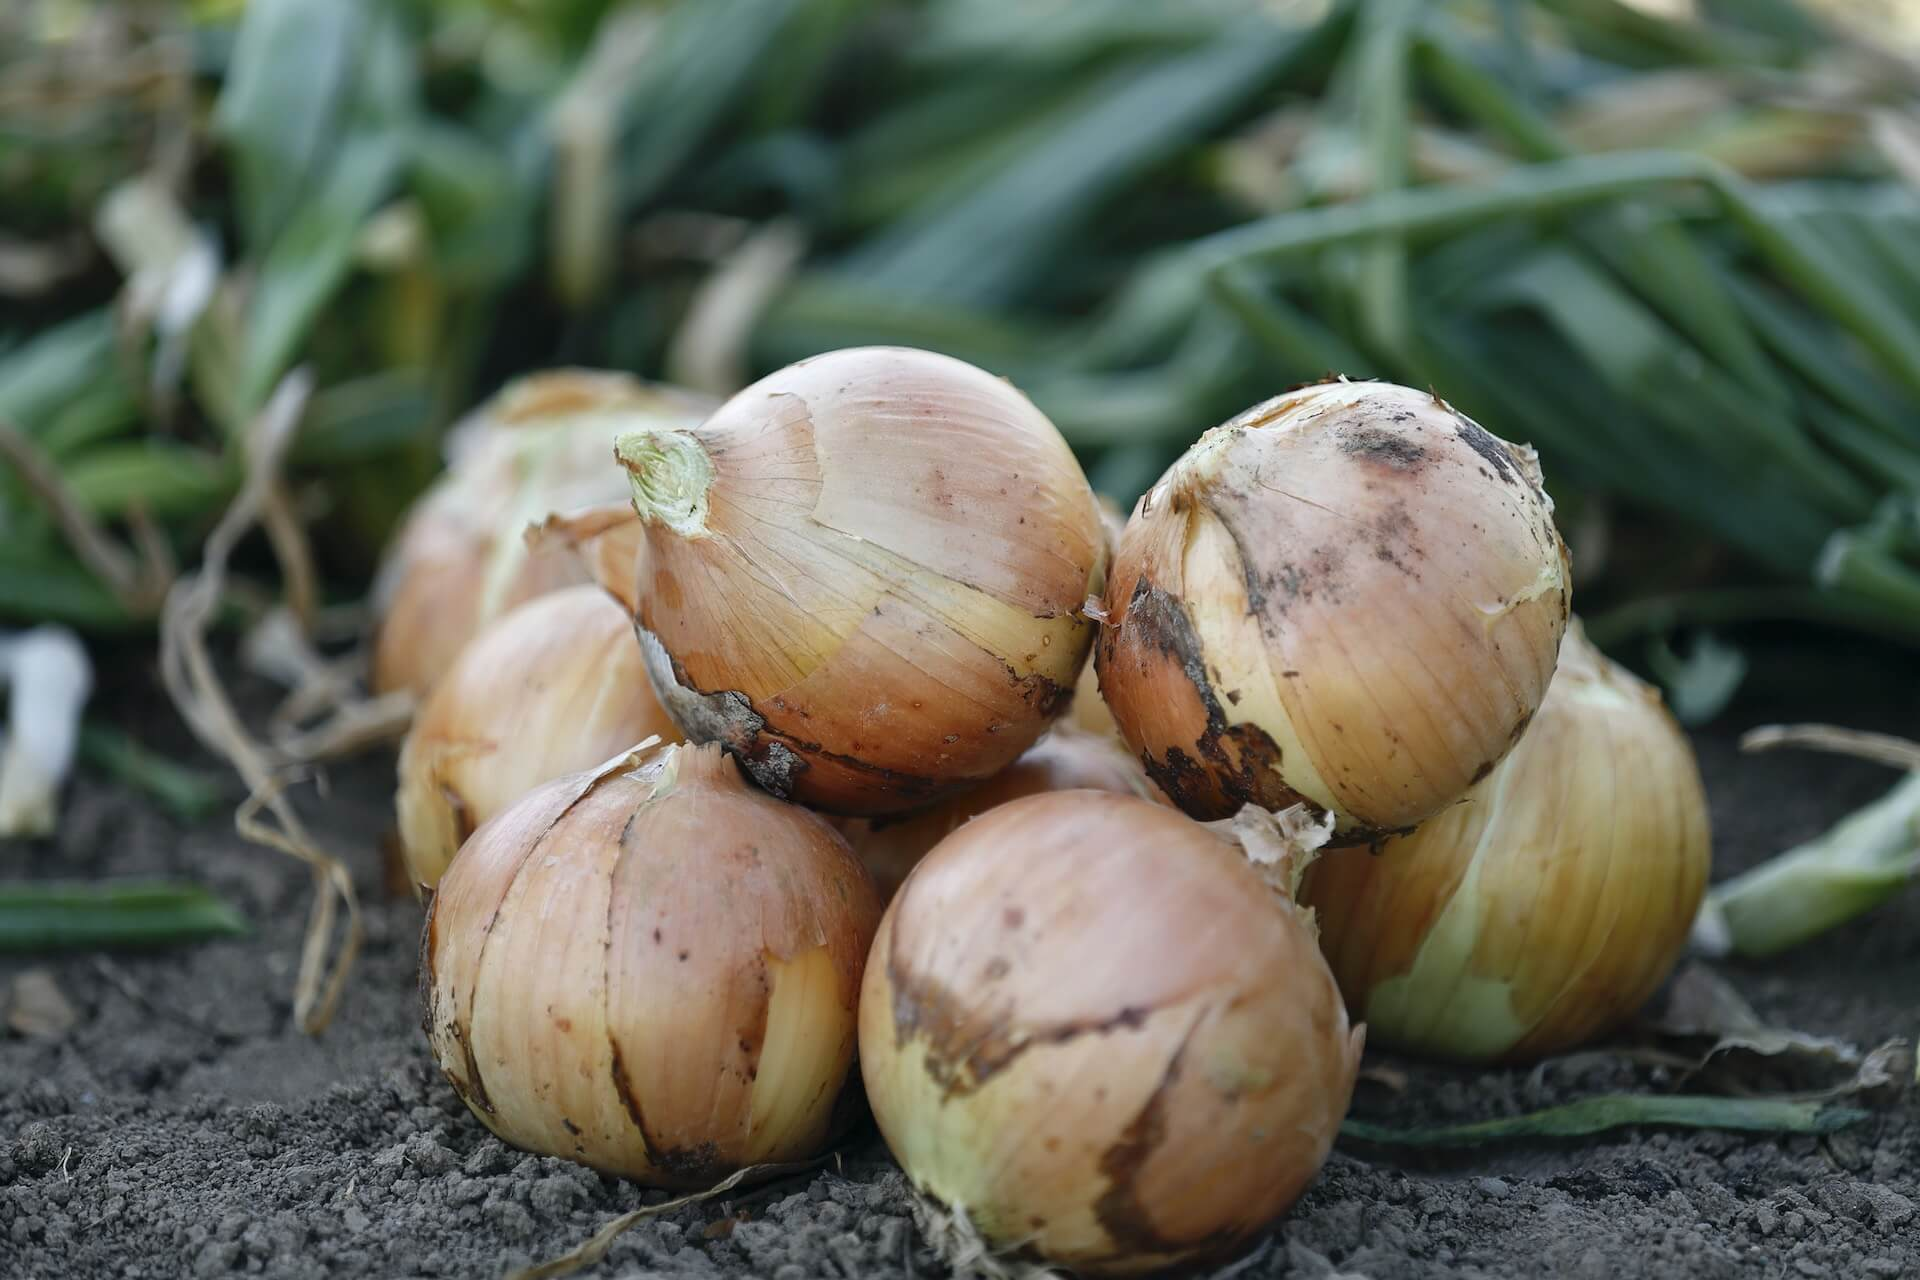 group of onions in field